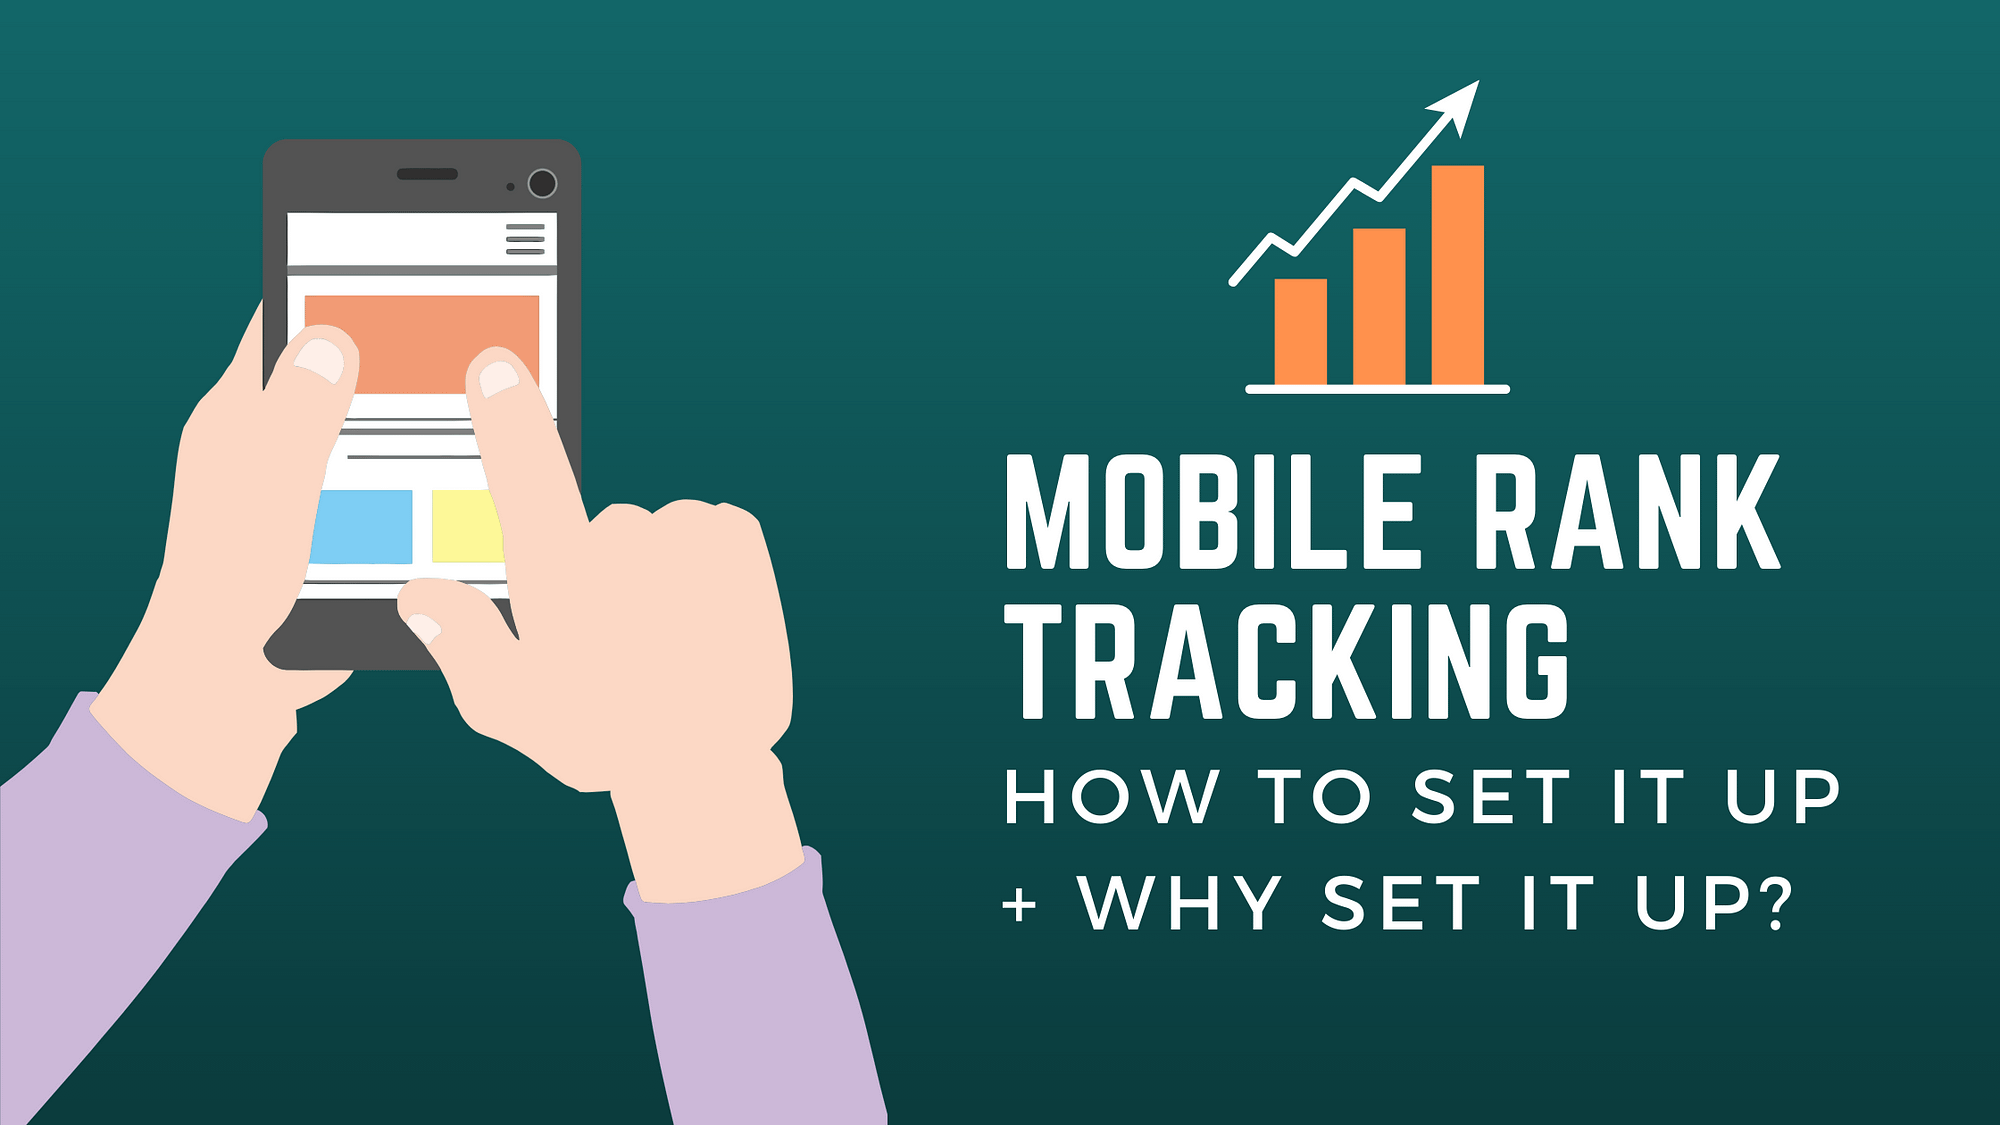 MOBILE RANK TRACKING